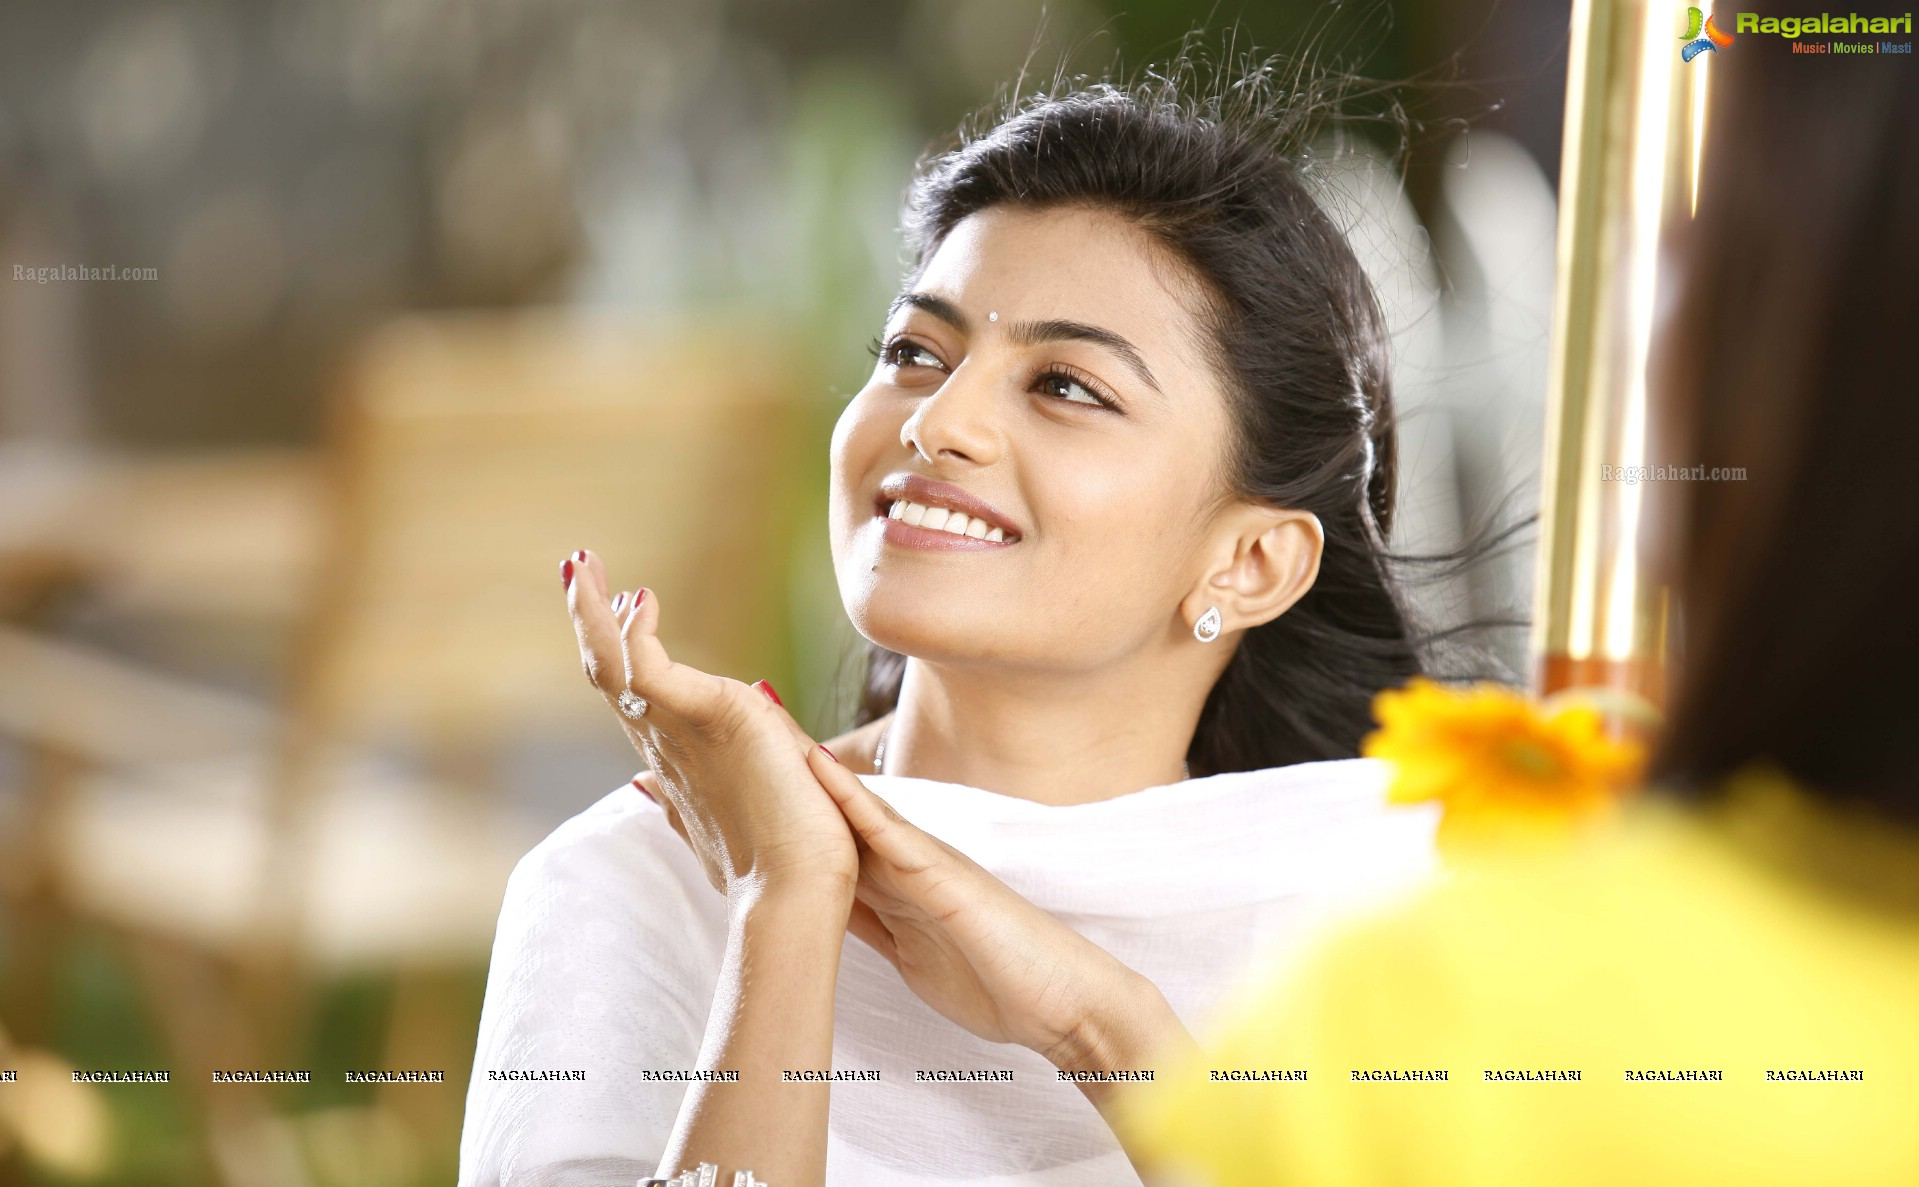 anandhi in green signal posters image 2 latest tollywood actor